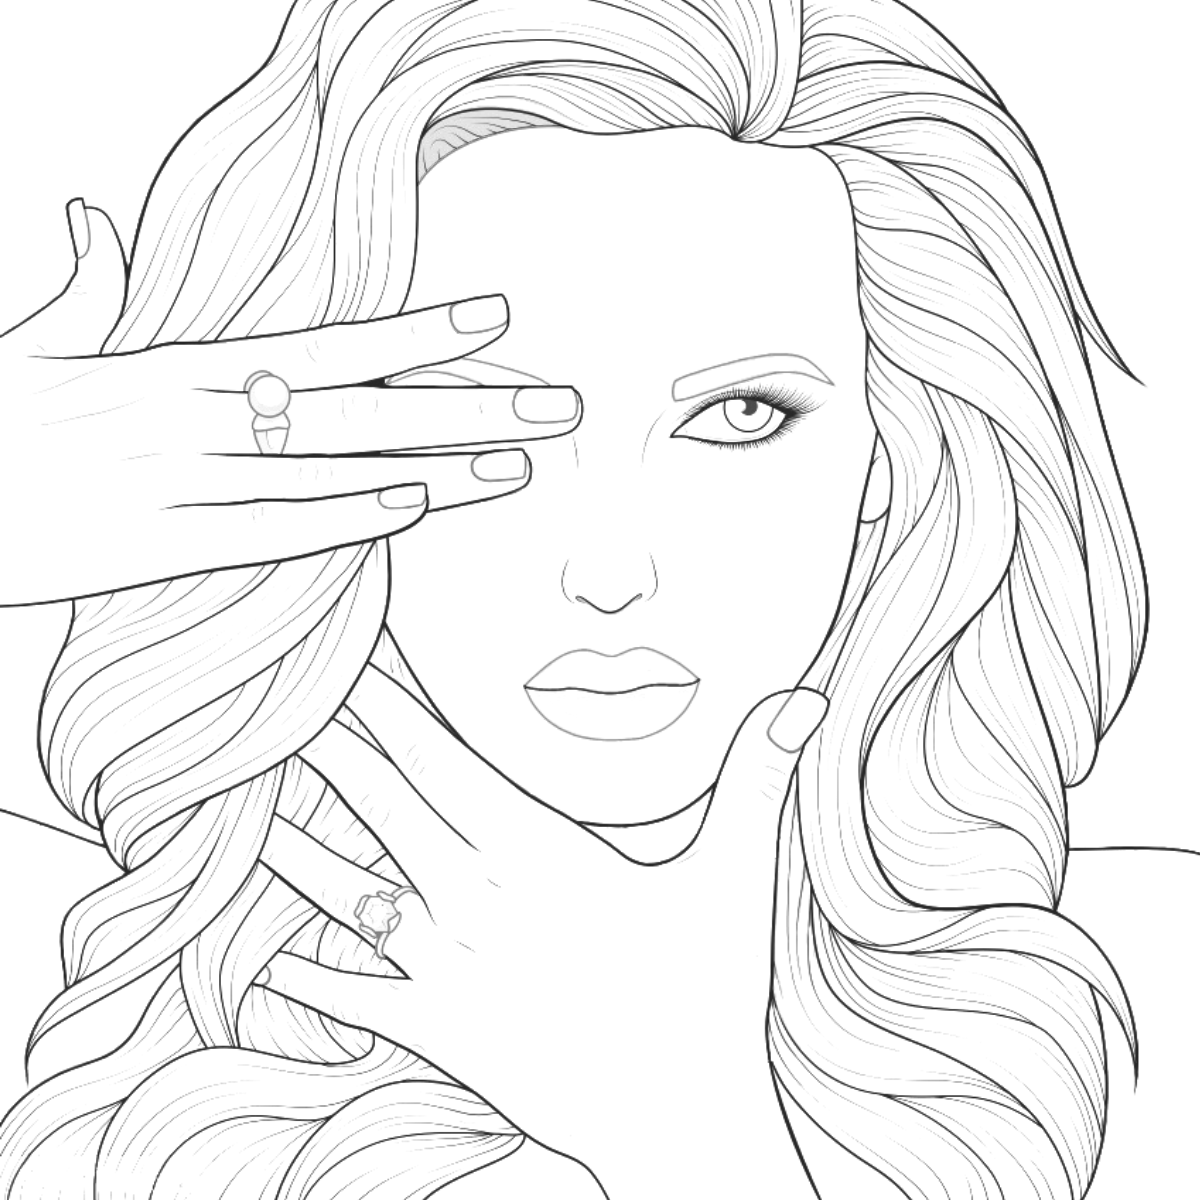 Pin By Harly Jones On Drawings Adult Coloring Book Pages Outline Drawings Adult Coloring Pages